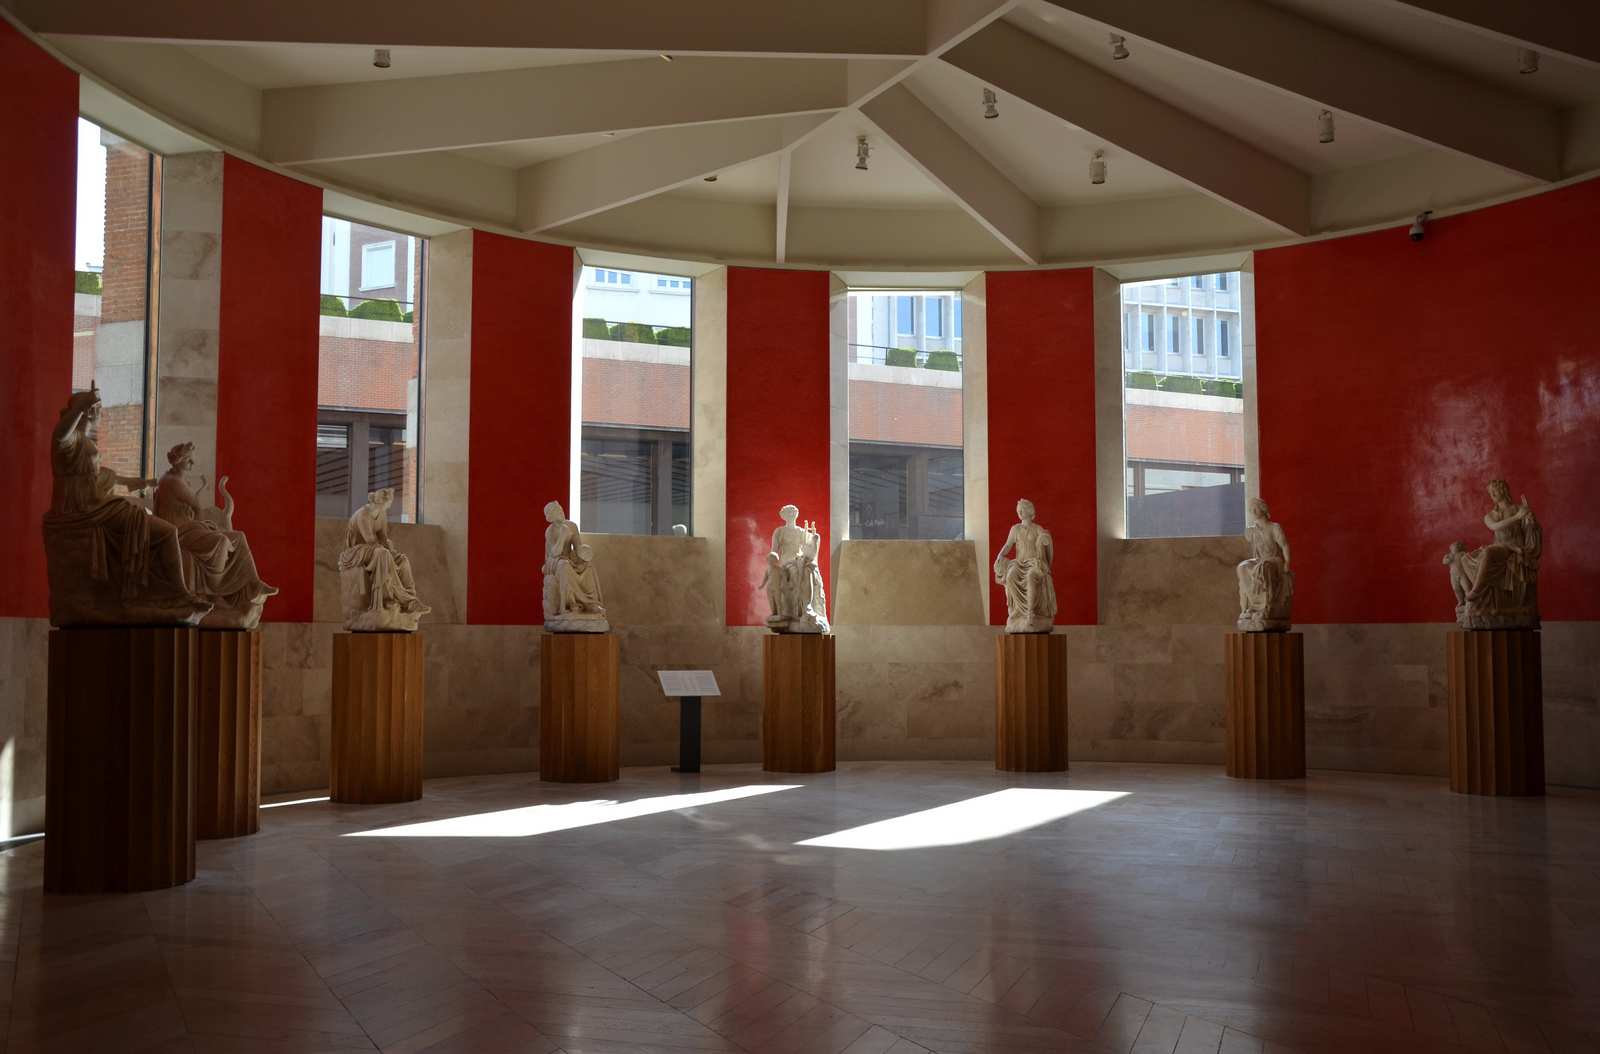 Art and sculptures from Hadrian's Villa: Eight statues of seated Muses